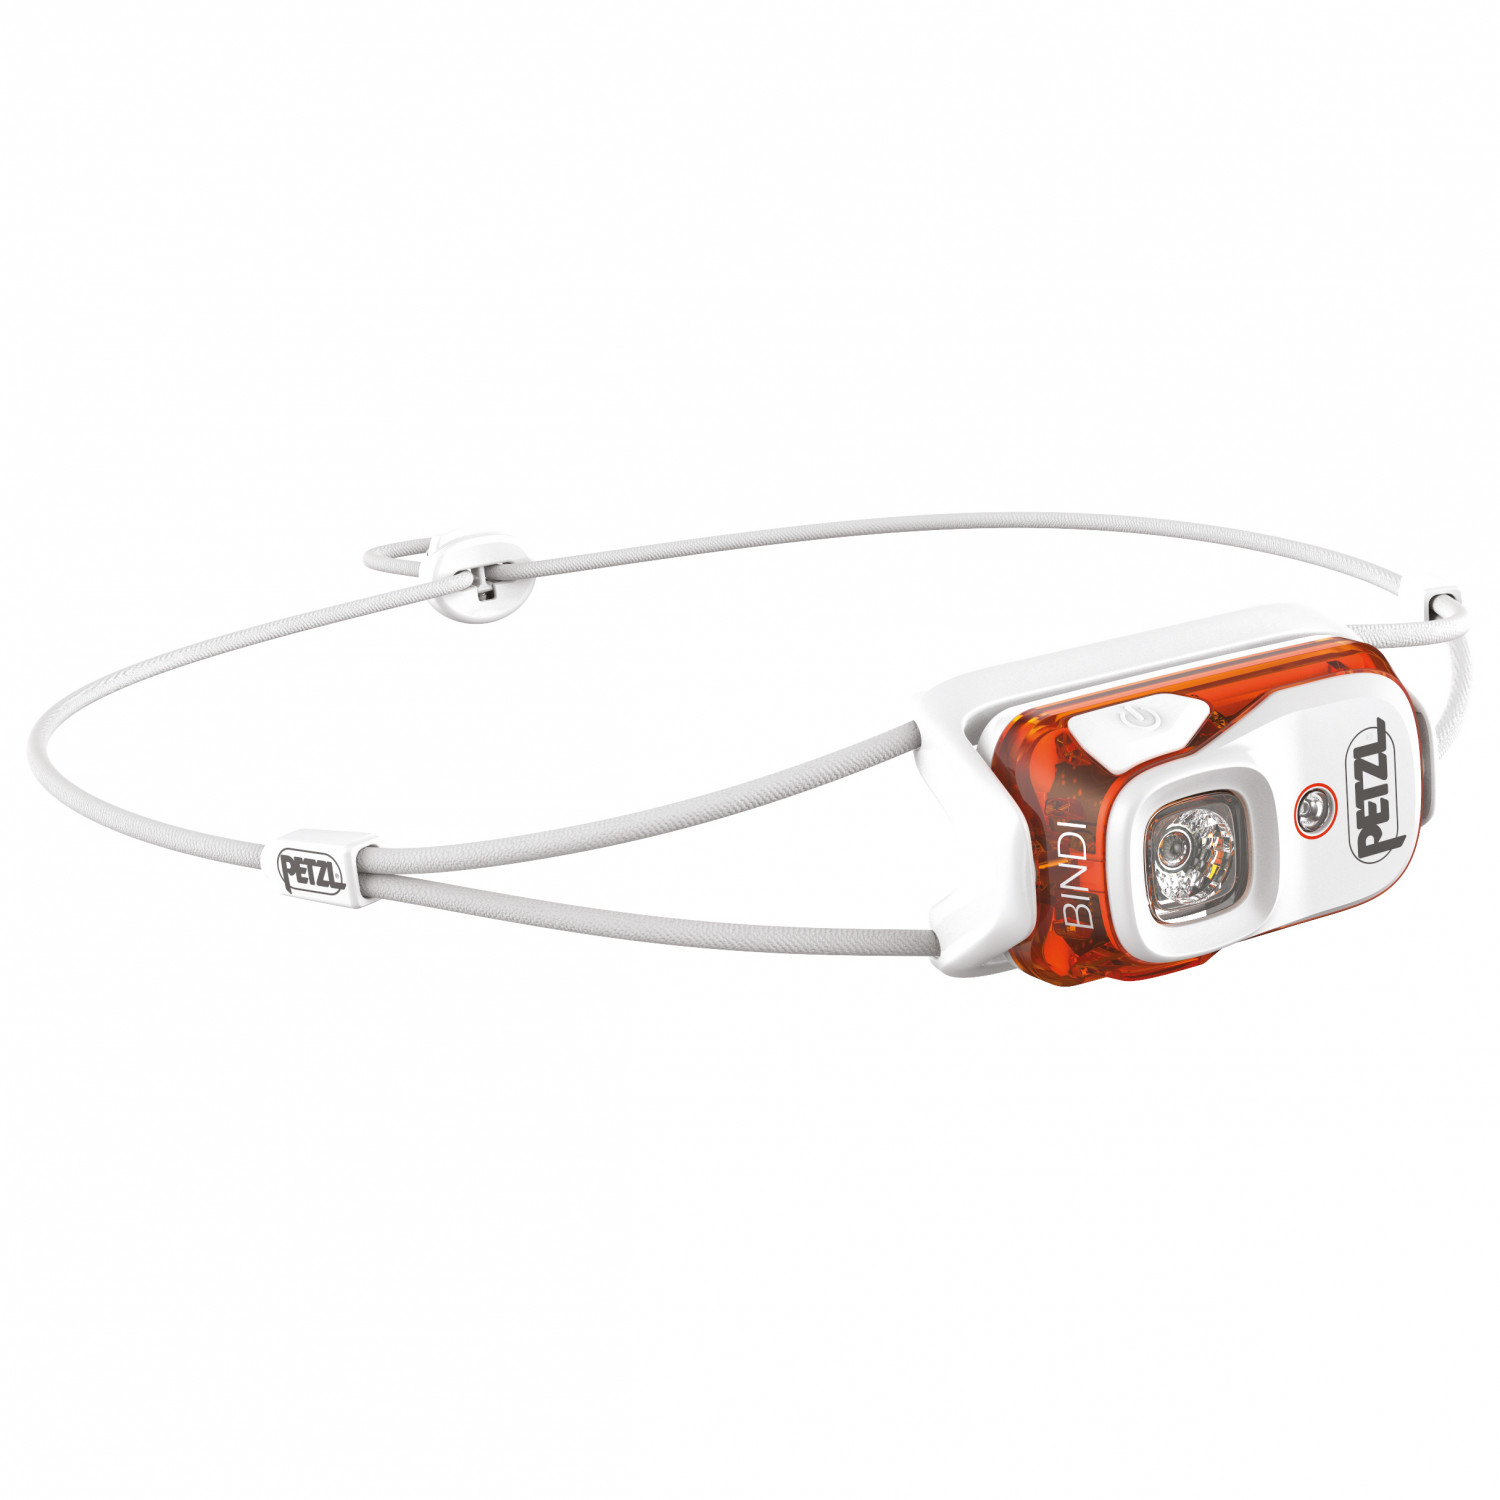 day-hiking-in-the-canadian-rockies-petzl-headlamp